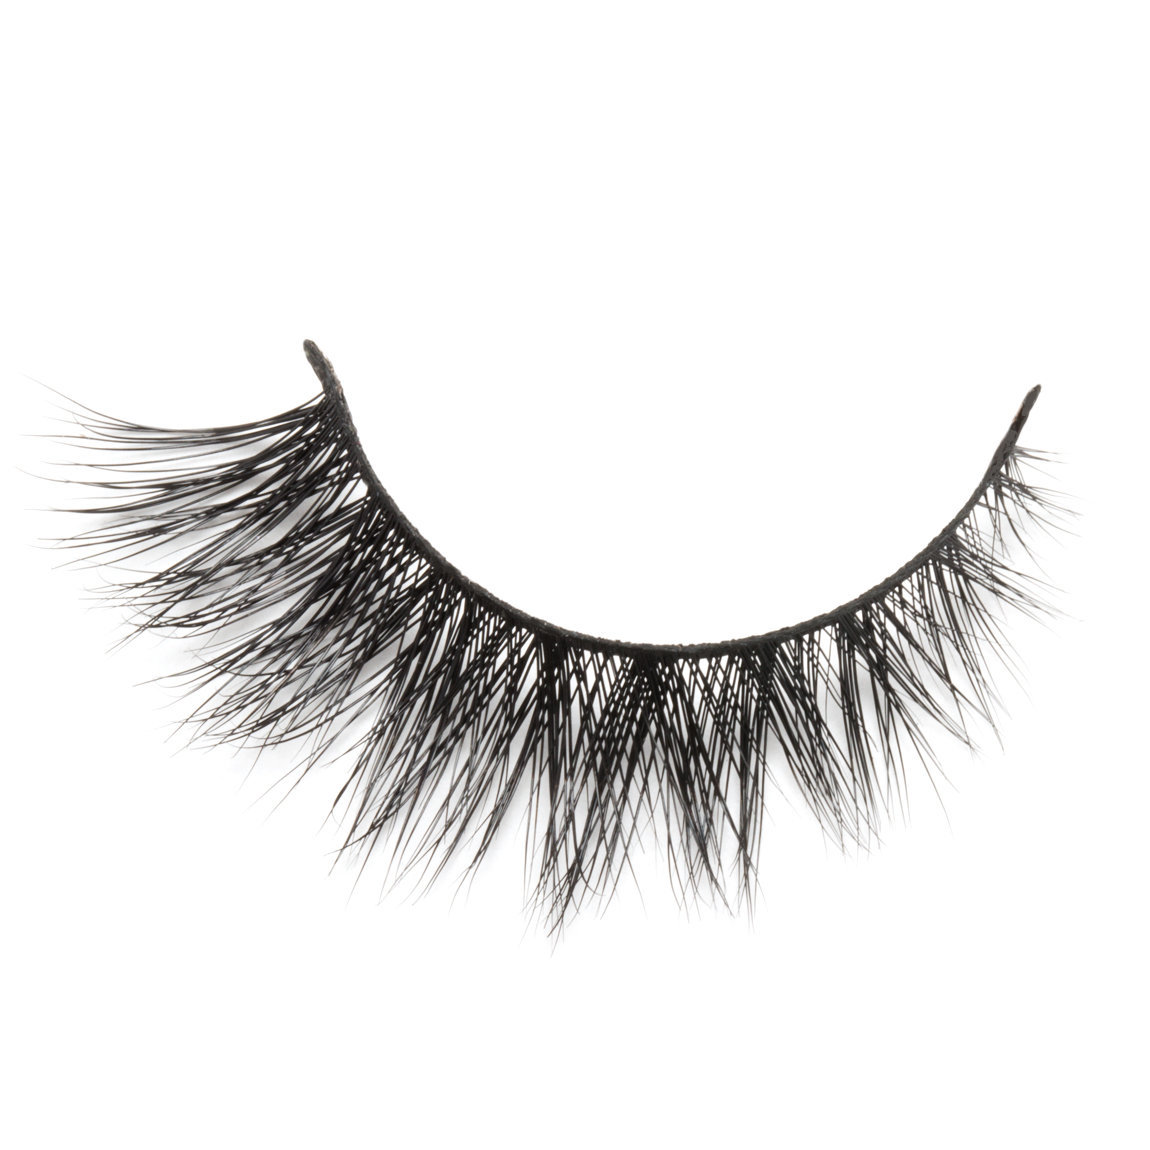 Velour Lashes Take It, and Go! product smear.